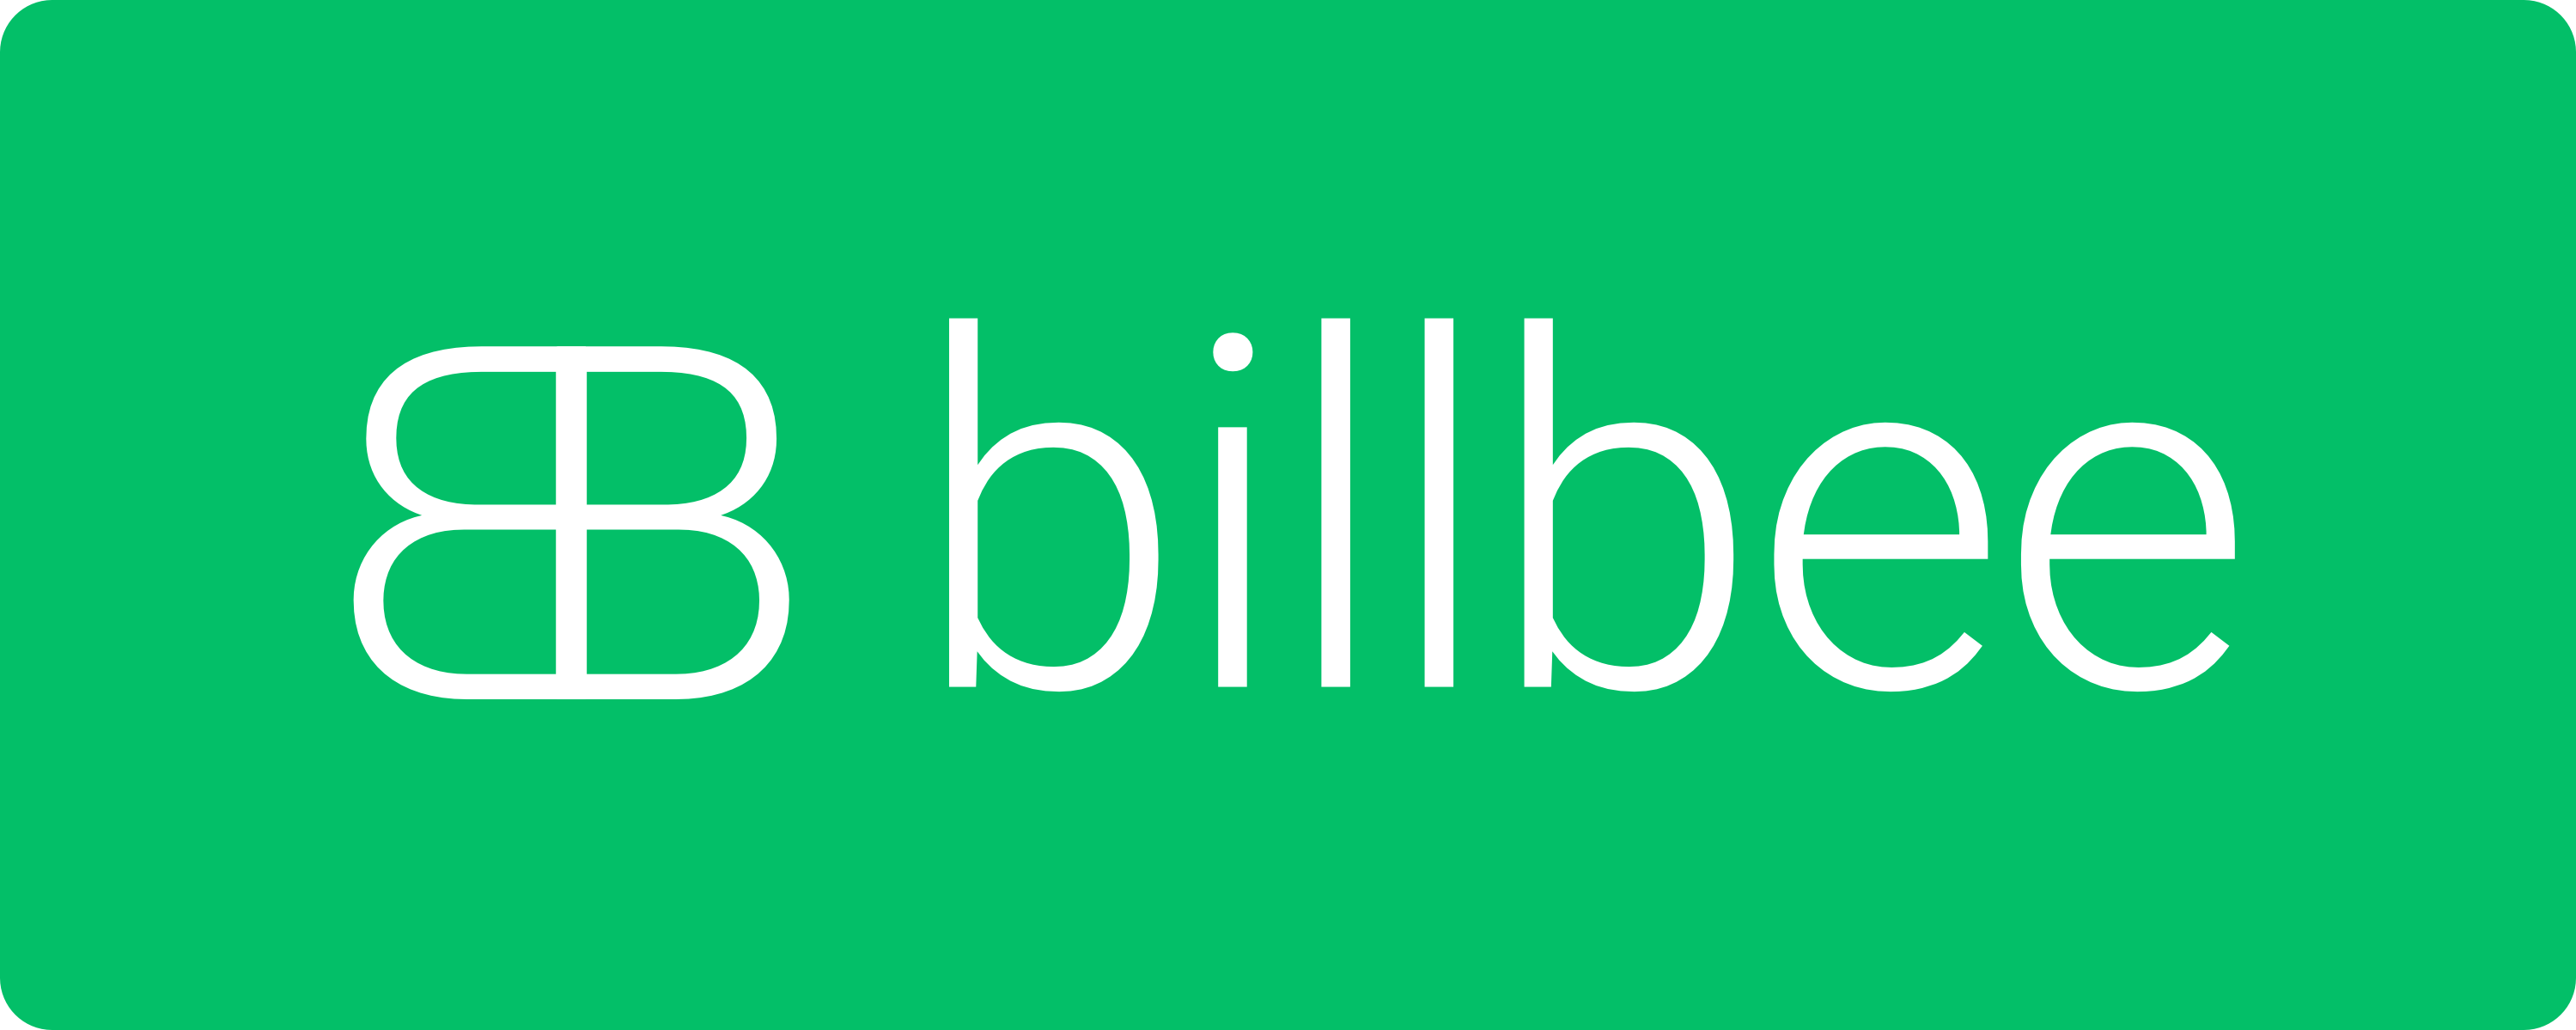 billbee_logo_mit_text_png_2999.png